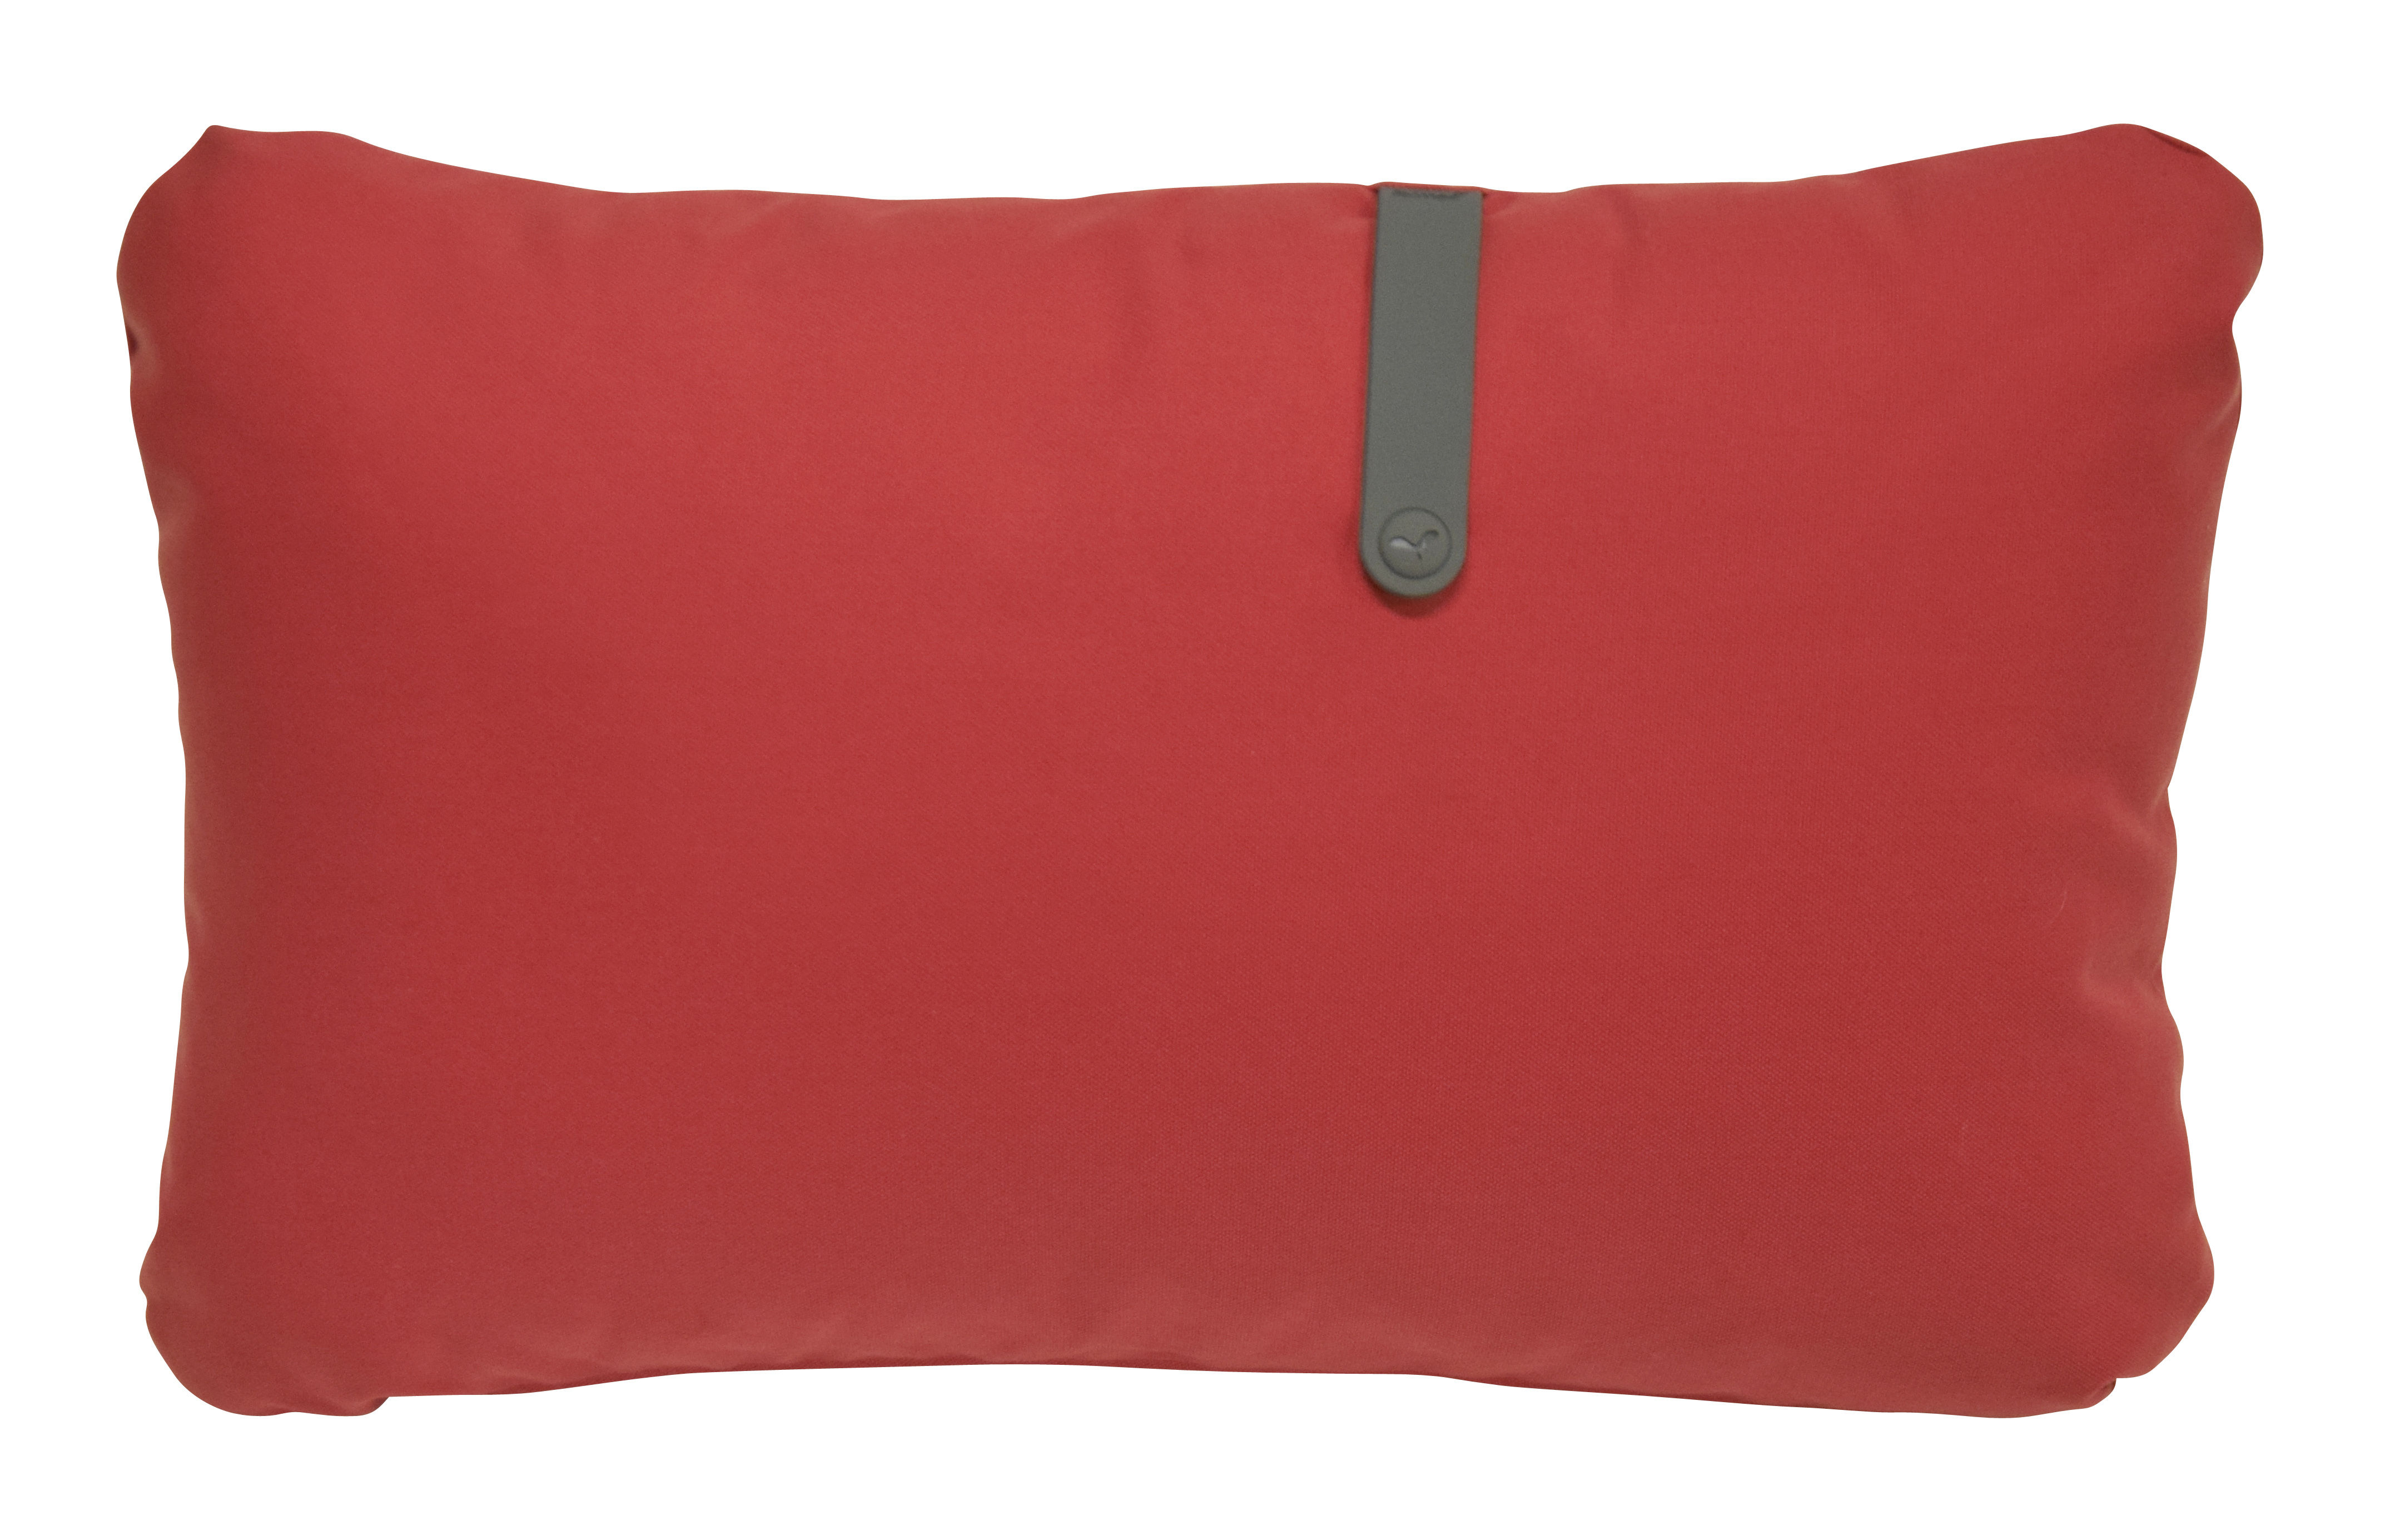 Decoration - Cushions & Poufs - Color Mix Outdoor cushion - 68 x 44 cm by Fermob - Candy red / Rosemary stripe - Acrylic fabric, Foam, PVC